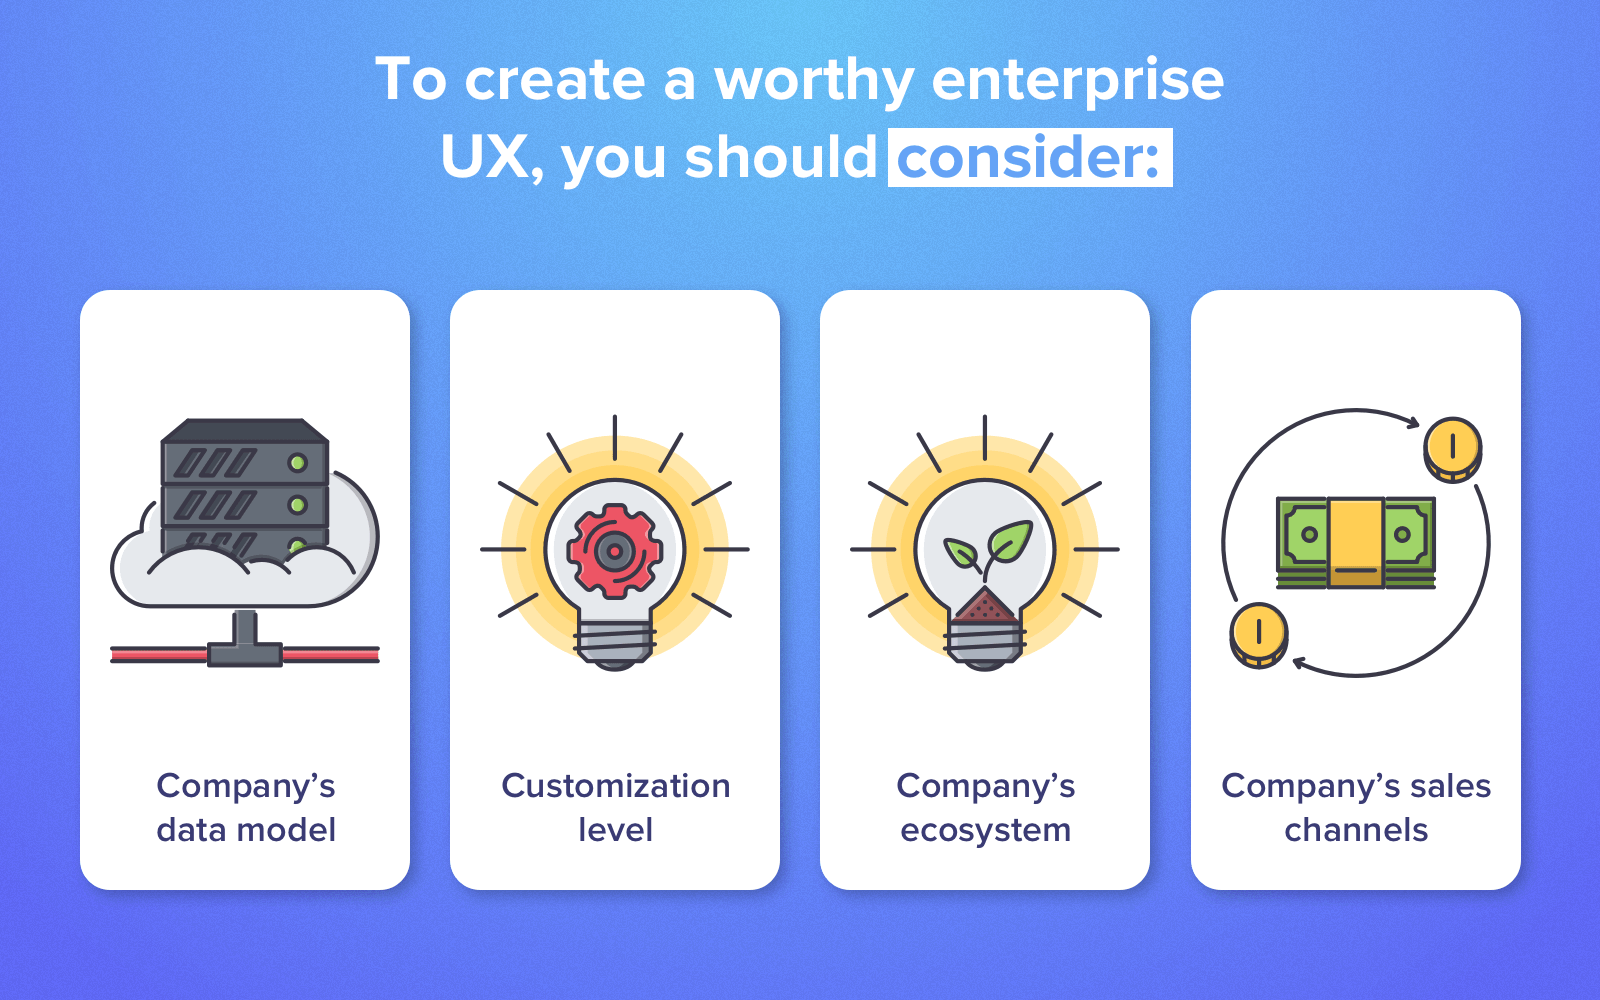 Enterprise UX design: What to consider